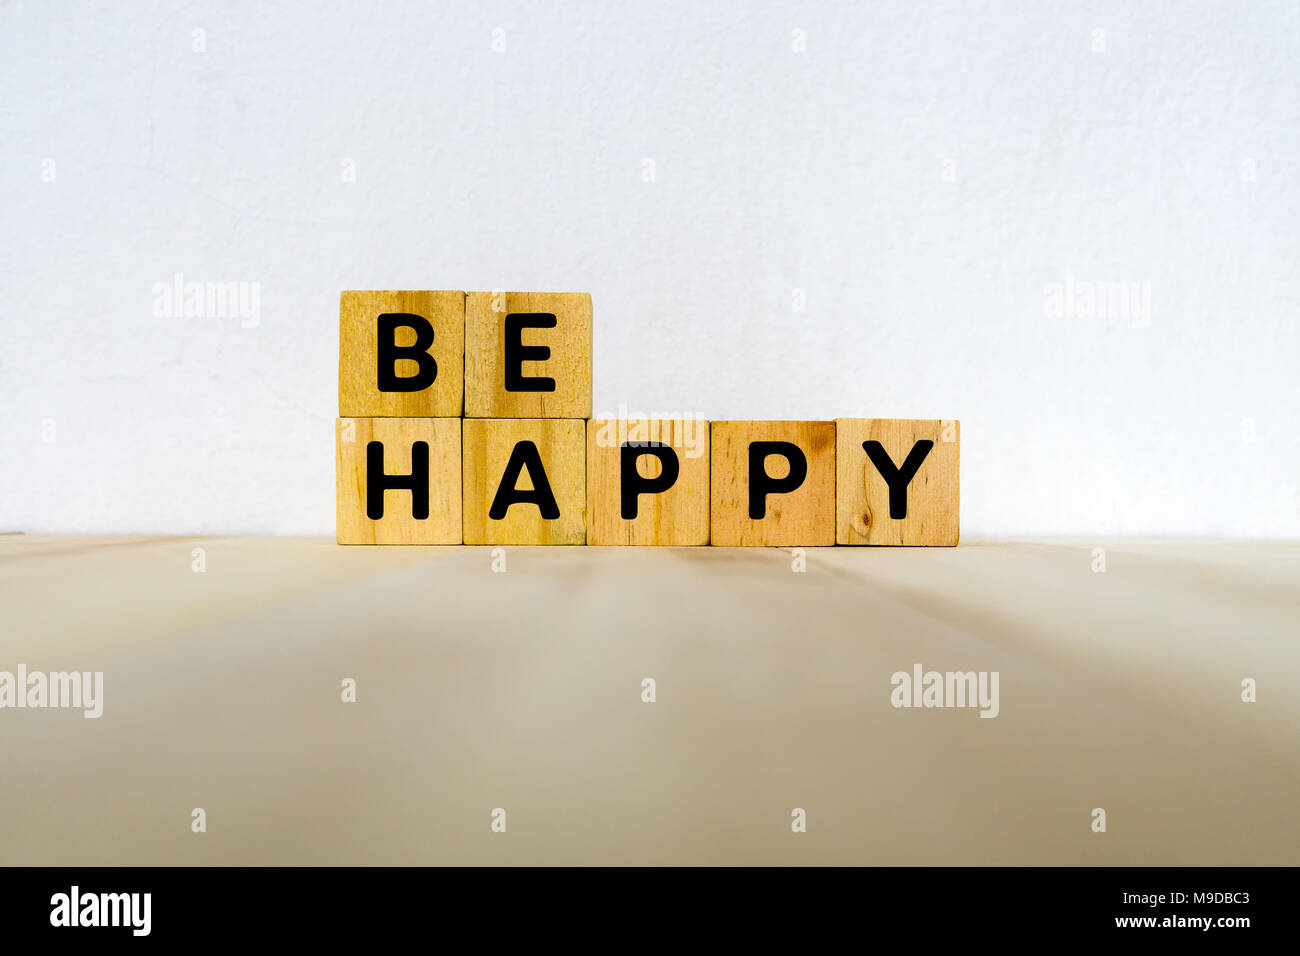 Be happy word on wood block - motivational concept - Stock Image